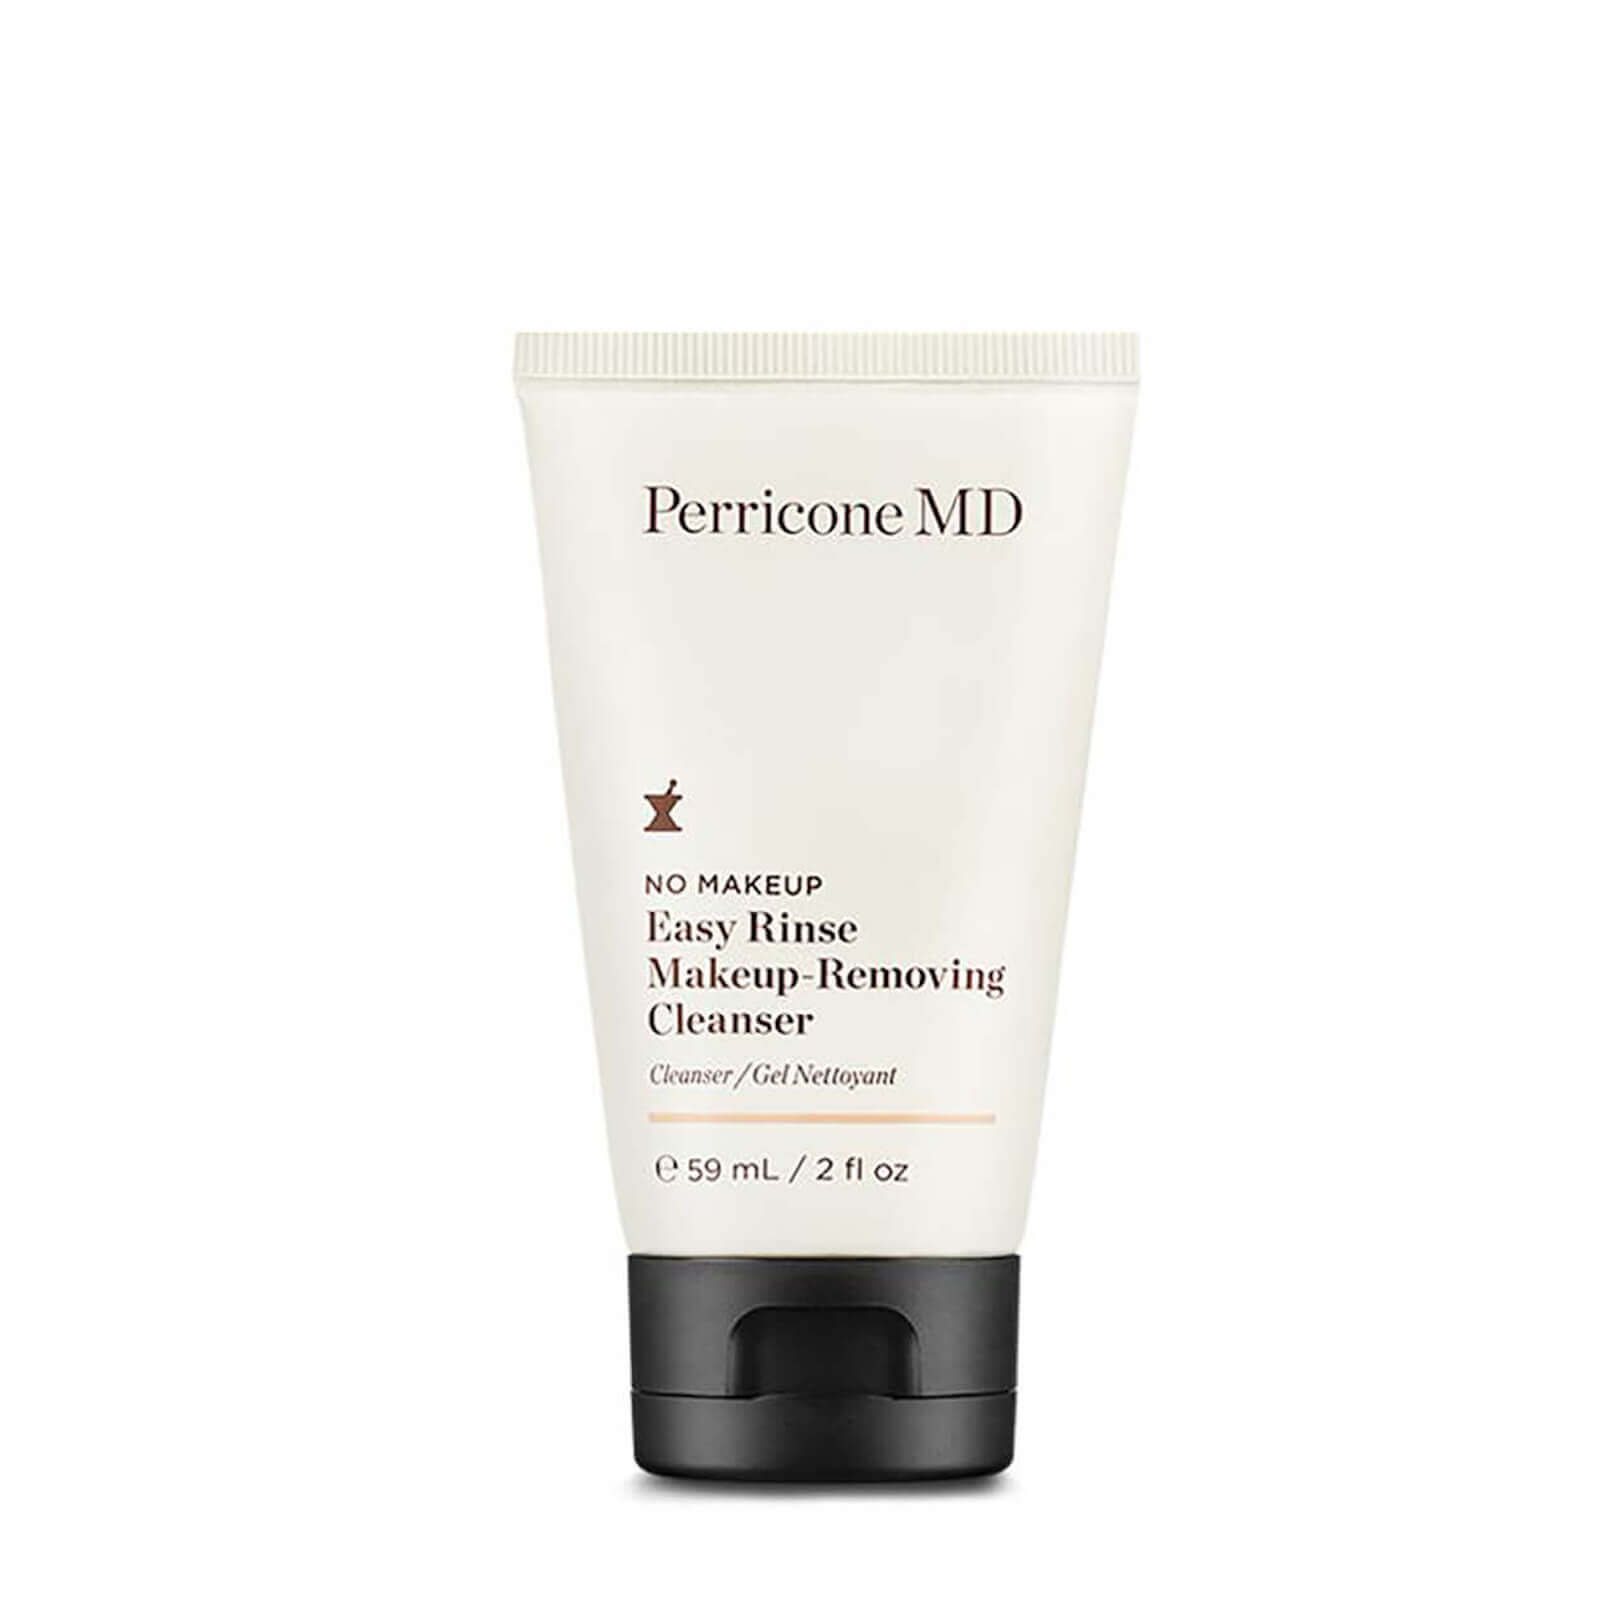 Купить Perricone MD No Makeup Easy Rinse Makeup-Removing Cleanser 59ml